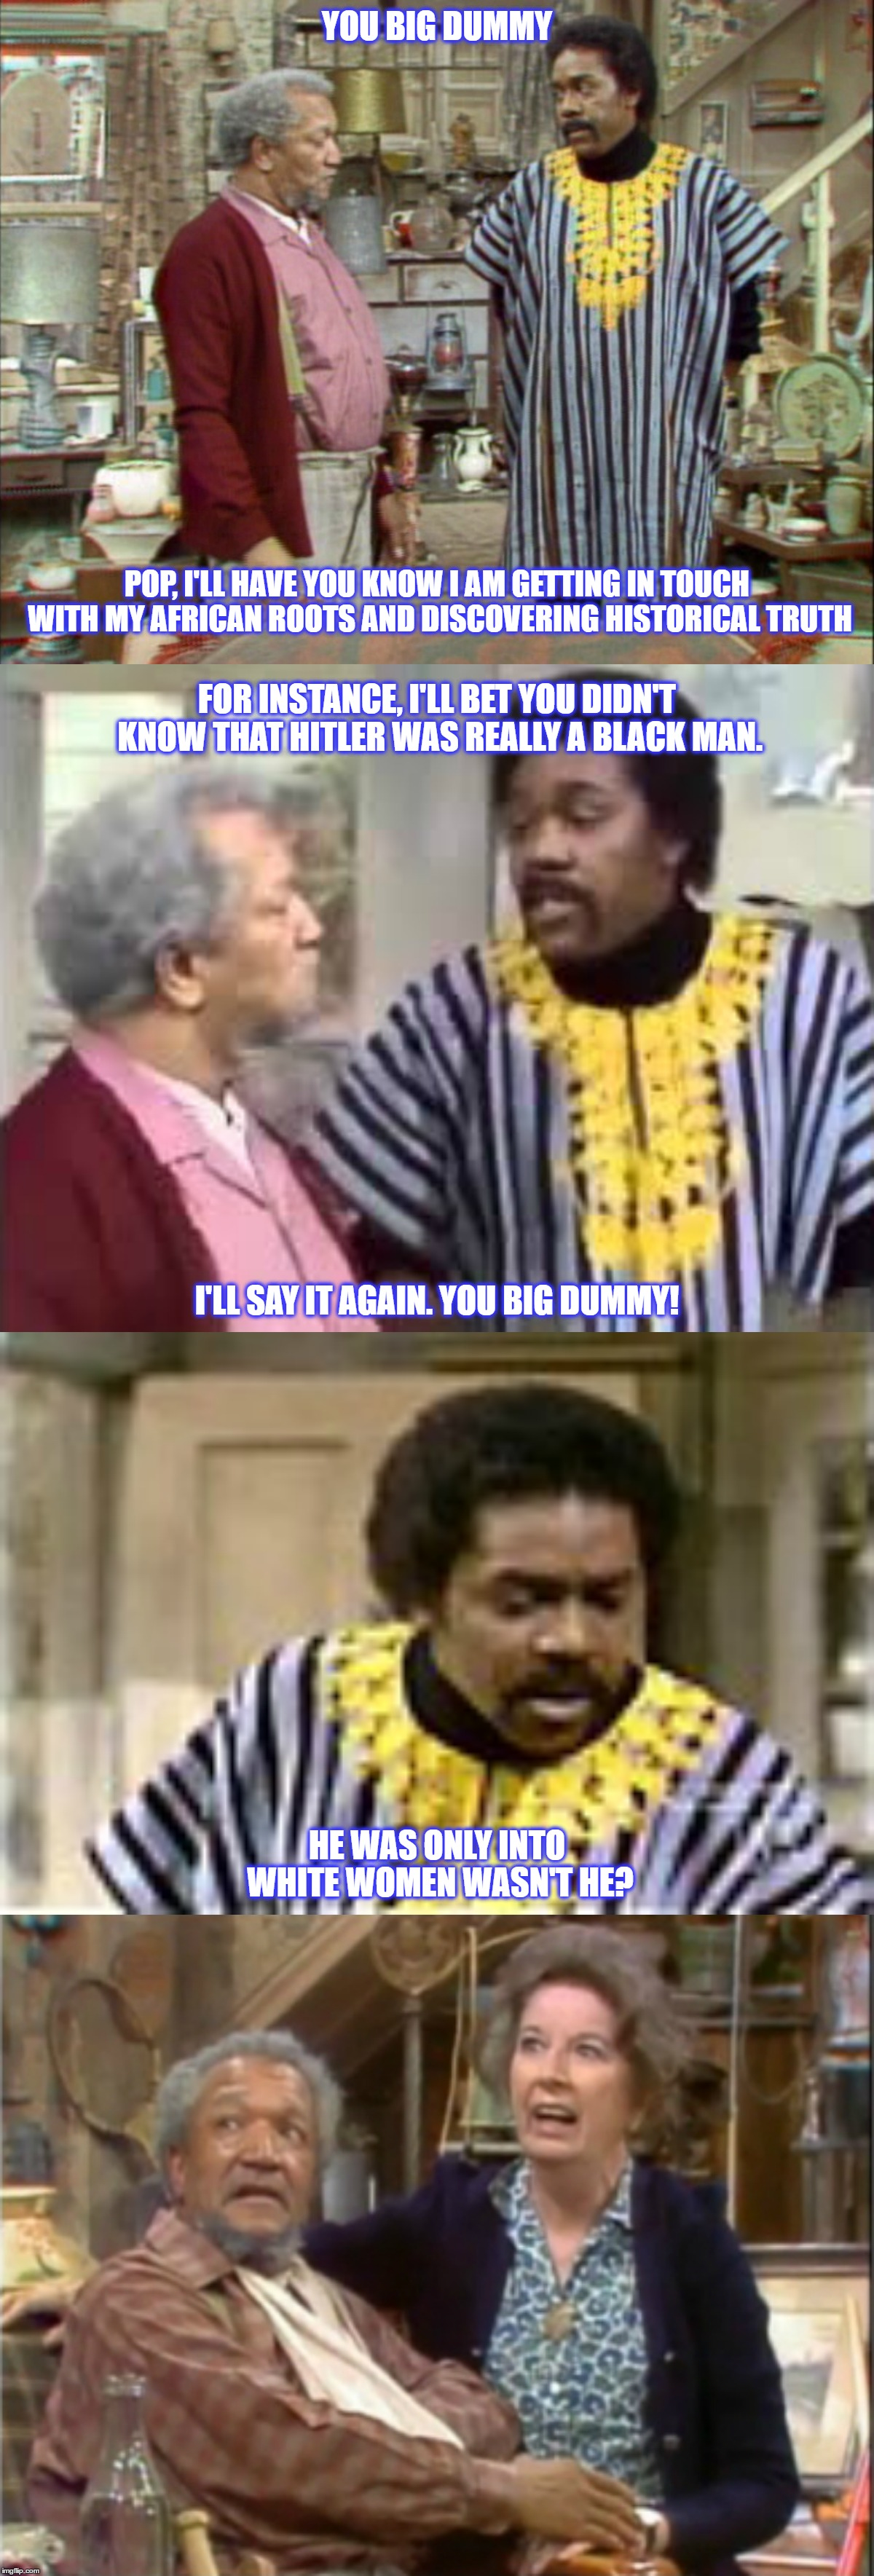 Black Hitler |  YOU BIG DUMMY; POP, I'LL HAVE YOU KNOW I AM GETTING IN TOUCH WITH MY AFRICAN ROOTS AND DISCOVERING HISTORICAL TRUTH; FOR INSTANCE, I'LL BET YOU DIDN'T KNOW THAT HITLER WAS REALLY A BLACK MAN. I'LL SAY IT AGAIN. YOU BIG DUMMY! HE WAS ONLY INTO WHITE WOMEN WASN'T HE? | image tagged in fred sanford,adolf hitler,bad jokes,african,black man,funny memes | made w/ Imgflip meme maker